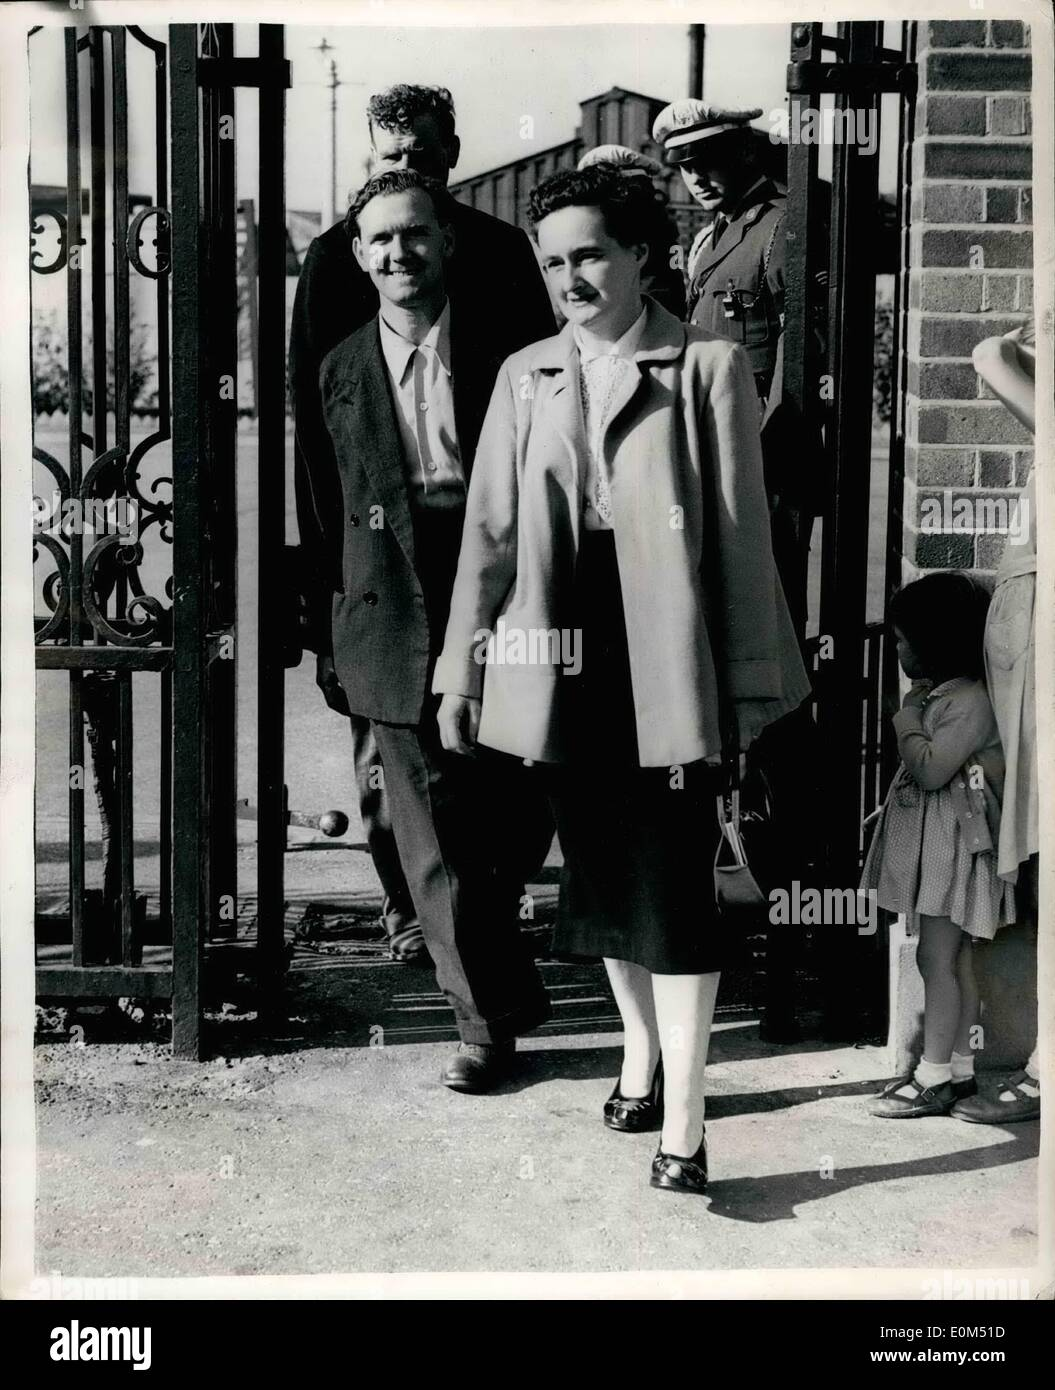 Aug. 08, 1953 - Rigden Under Close Arrest: Tony Rigden, 20-year old leading a aircraftman, whose disappearance in the Canal Zone caused an Anglo-Egyptian crisis, is under close arrest and guarded by R.A.P. police. No charge has been preferred against him. Rigden, a National Serviceman due to be demobised, was reported kidnapped in the Canal Zone seven weeks ago. Britain backed a demand for his return with strict control of traffic into Ismailia. Three days afterwards the controls were relaxed - Stock Image